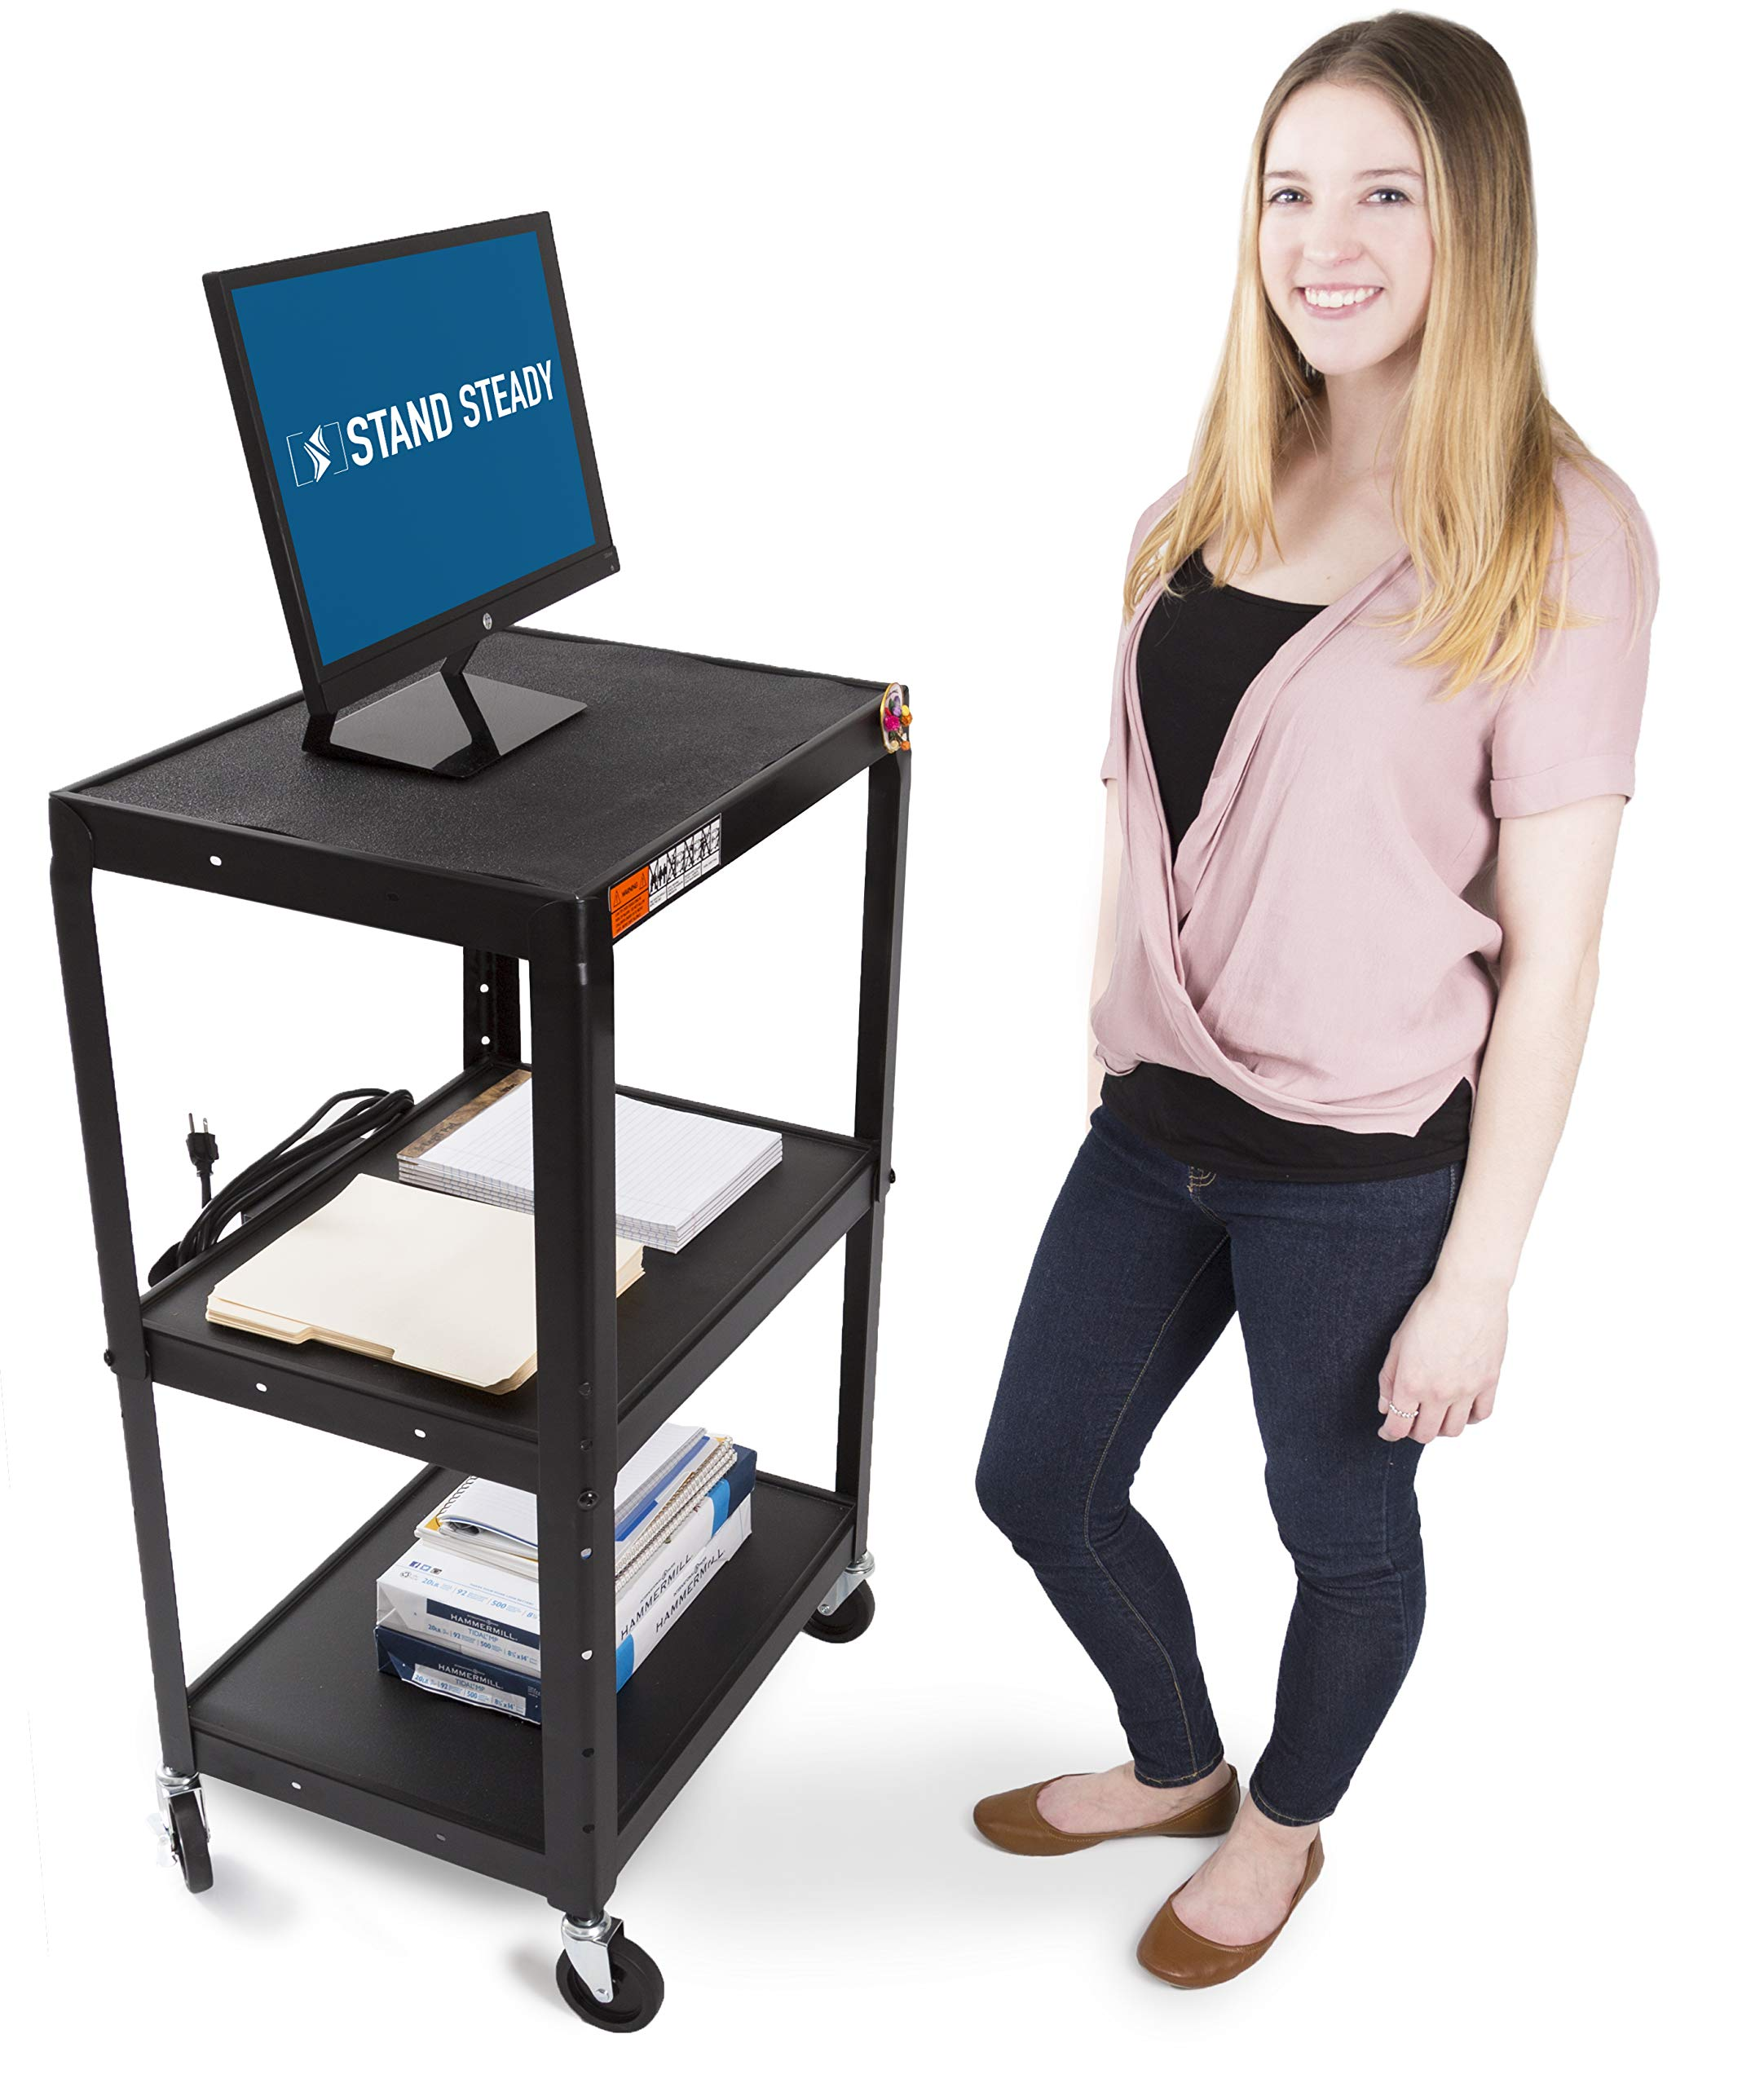 Line Leader AV Cart - Includes Height Adjustable Top Shelf! 15 ft Power Cord with Cord Management Included - Easy to Assemble! (42x24x18) (AV Cart - Black)